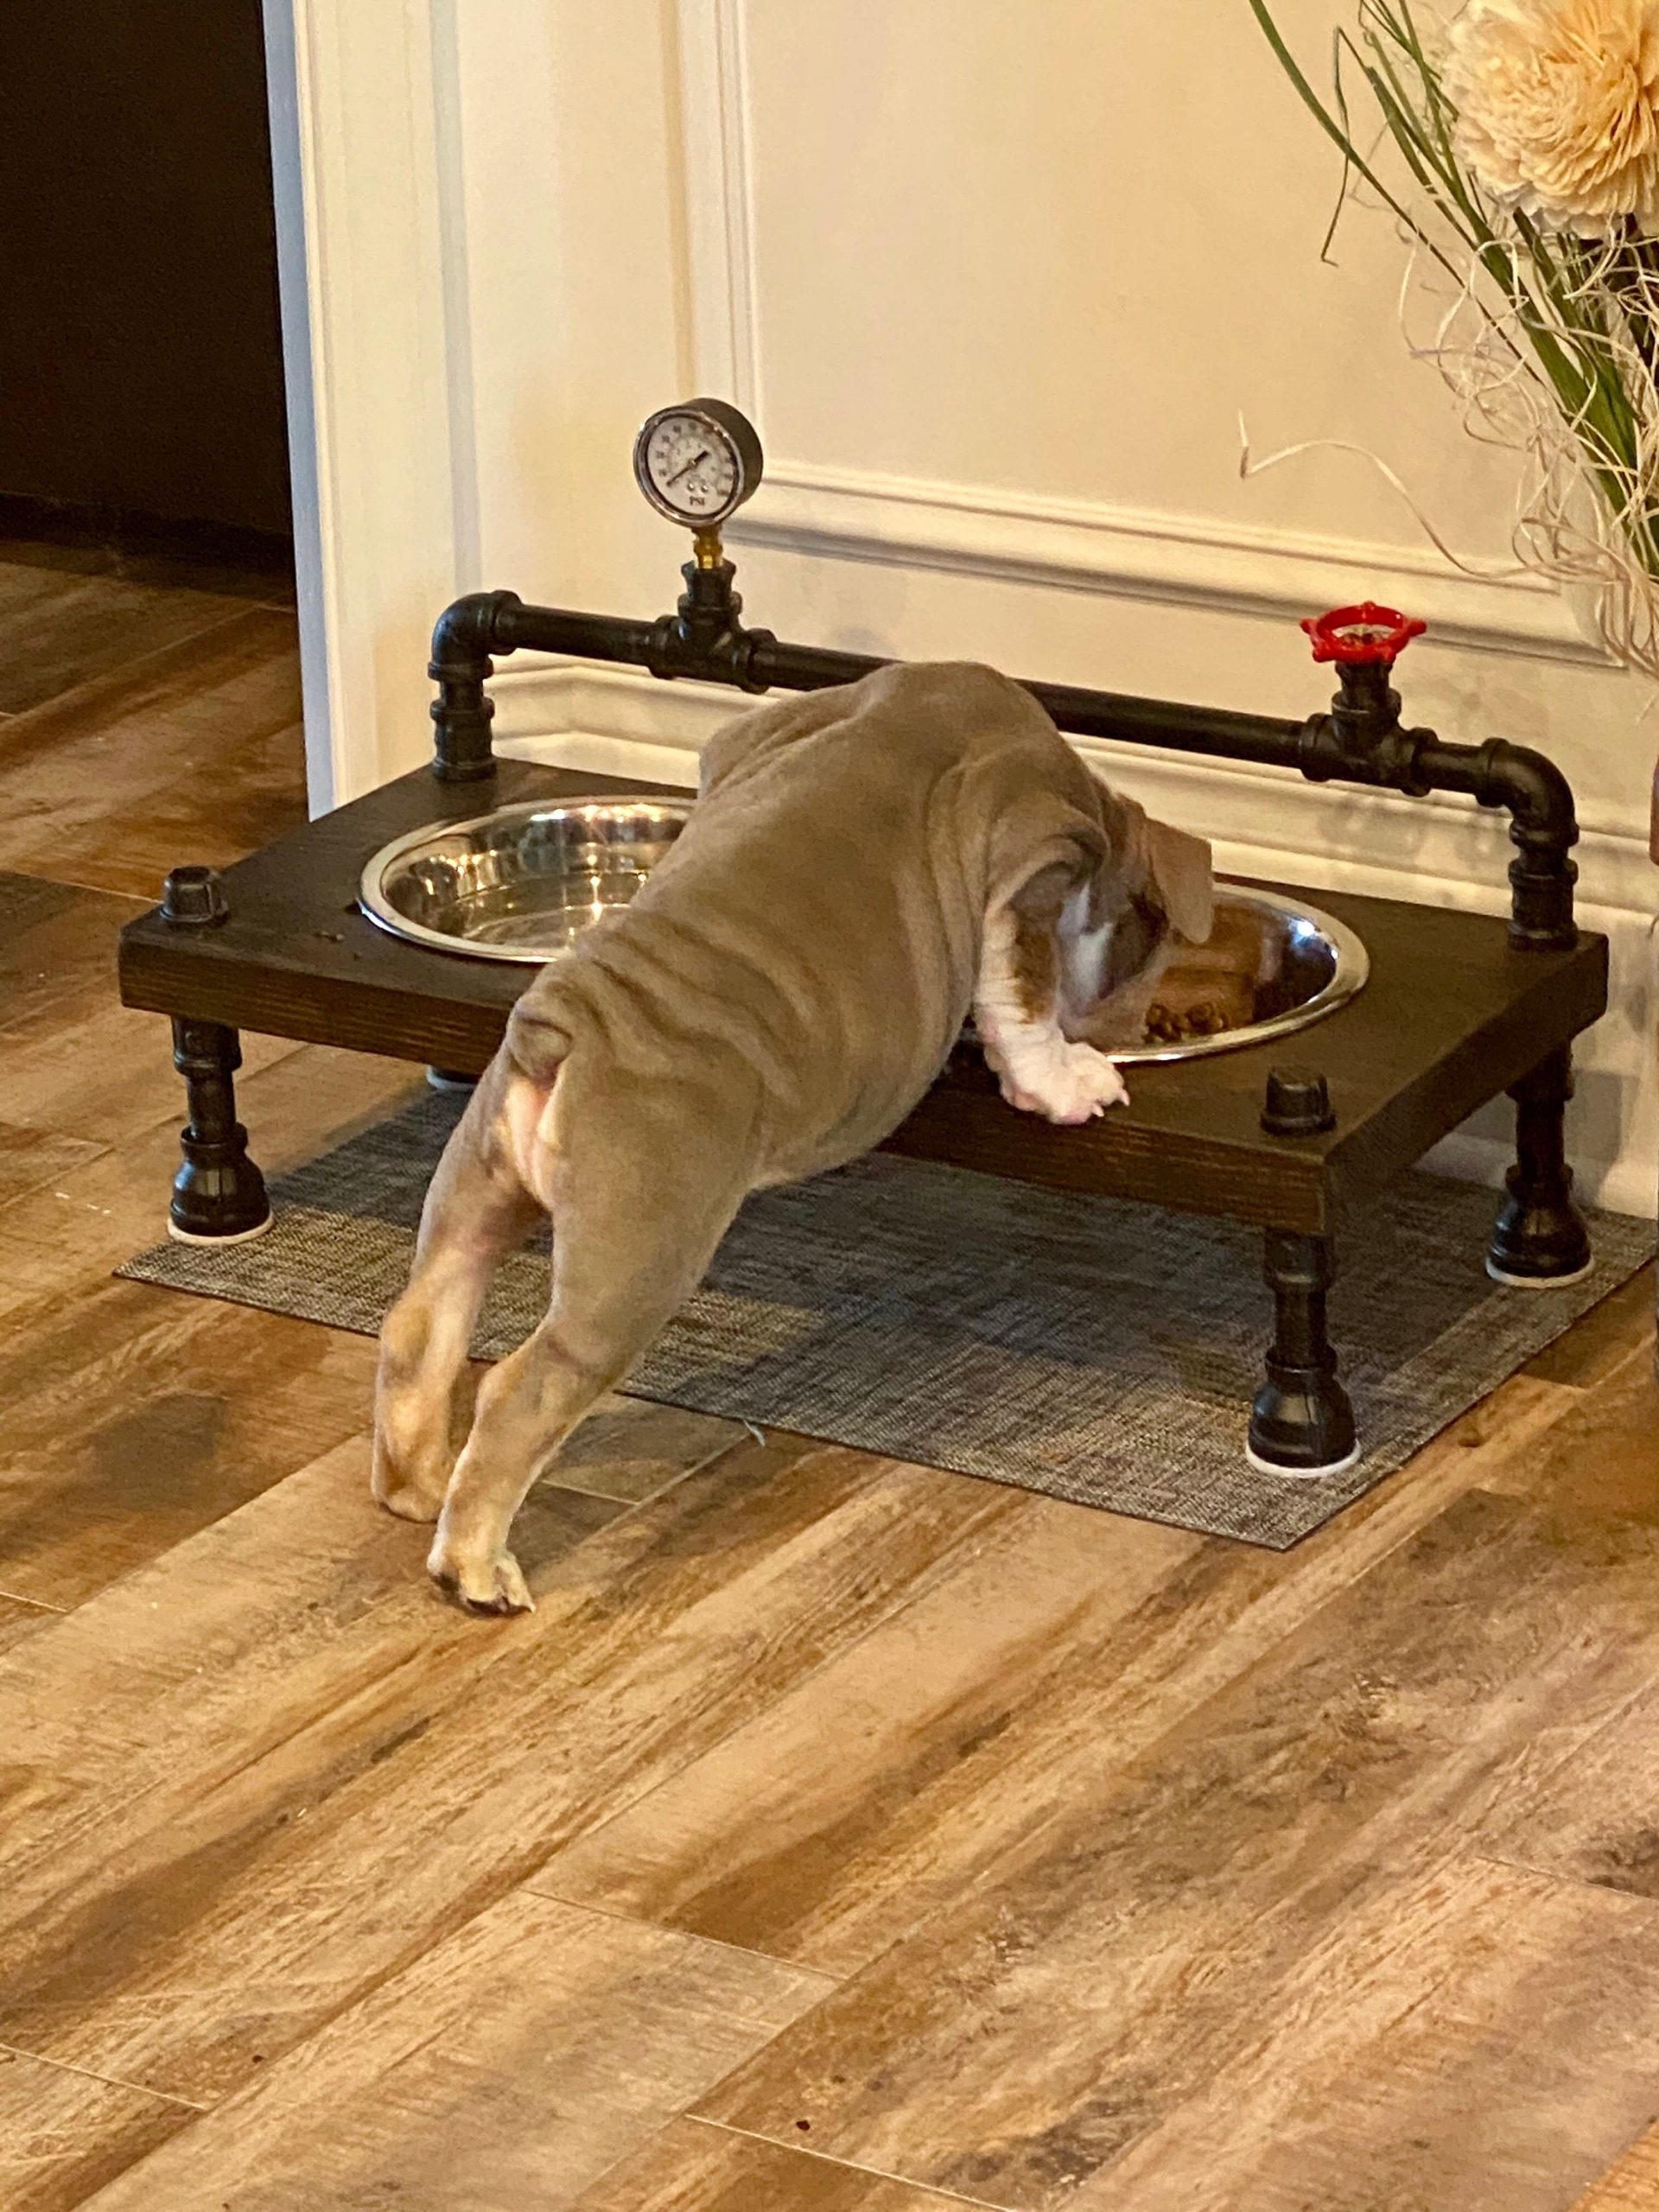 https://www.pipeworkpieces.com/wp-content/uploads/2020/10/steampunk-style-unique-raised-dog-bowl-feeder-cool-dog-feeder-free-personalization-included-new-lower-prices-5f7b91bf-scaled.jpg